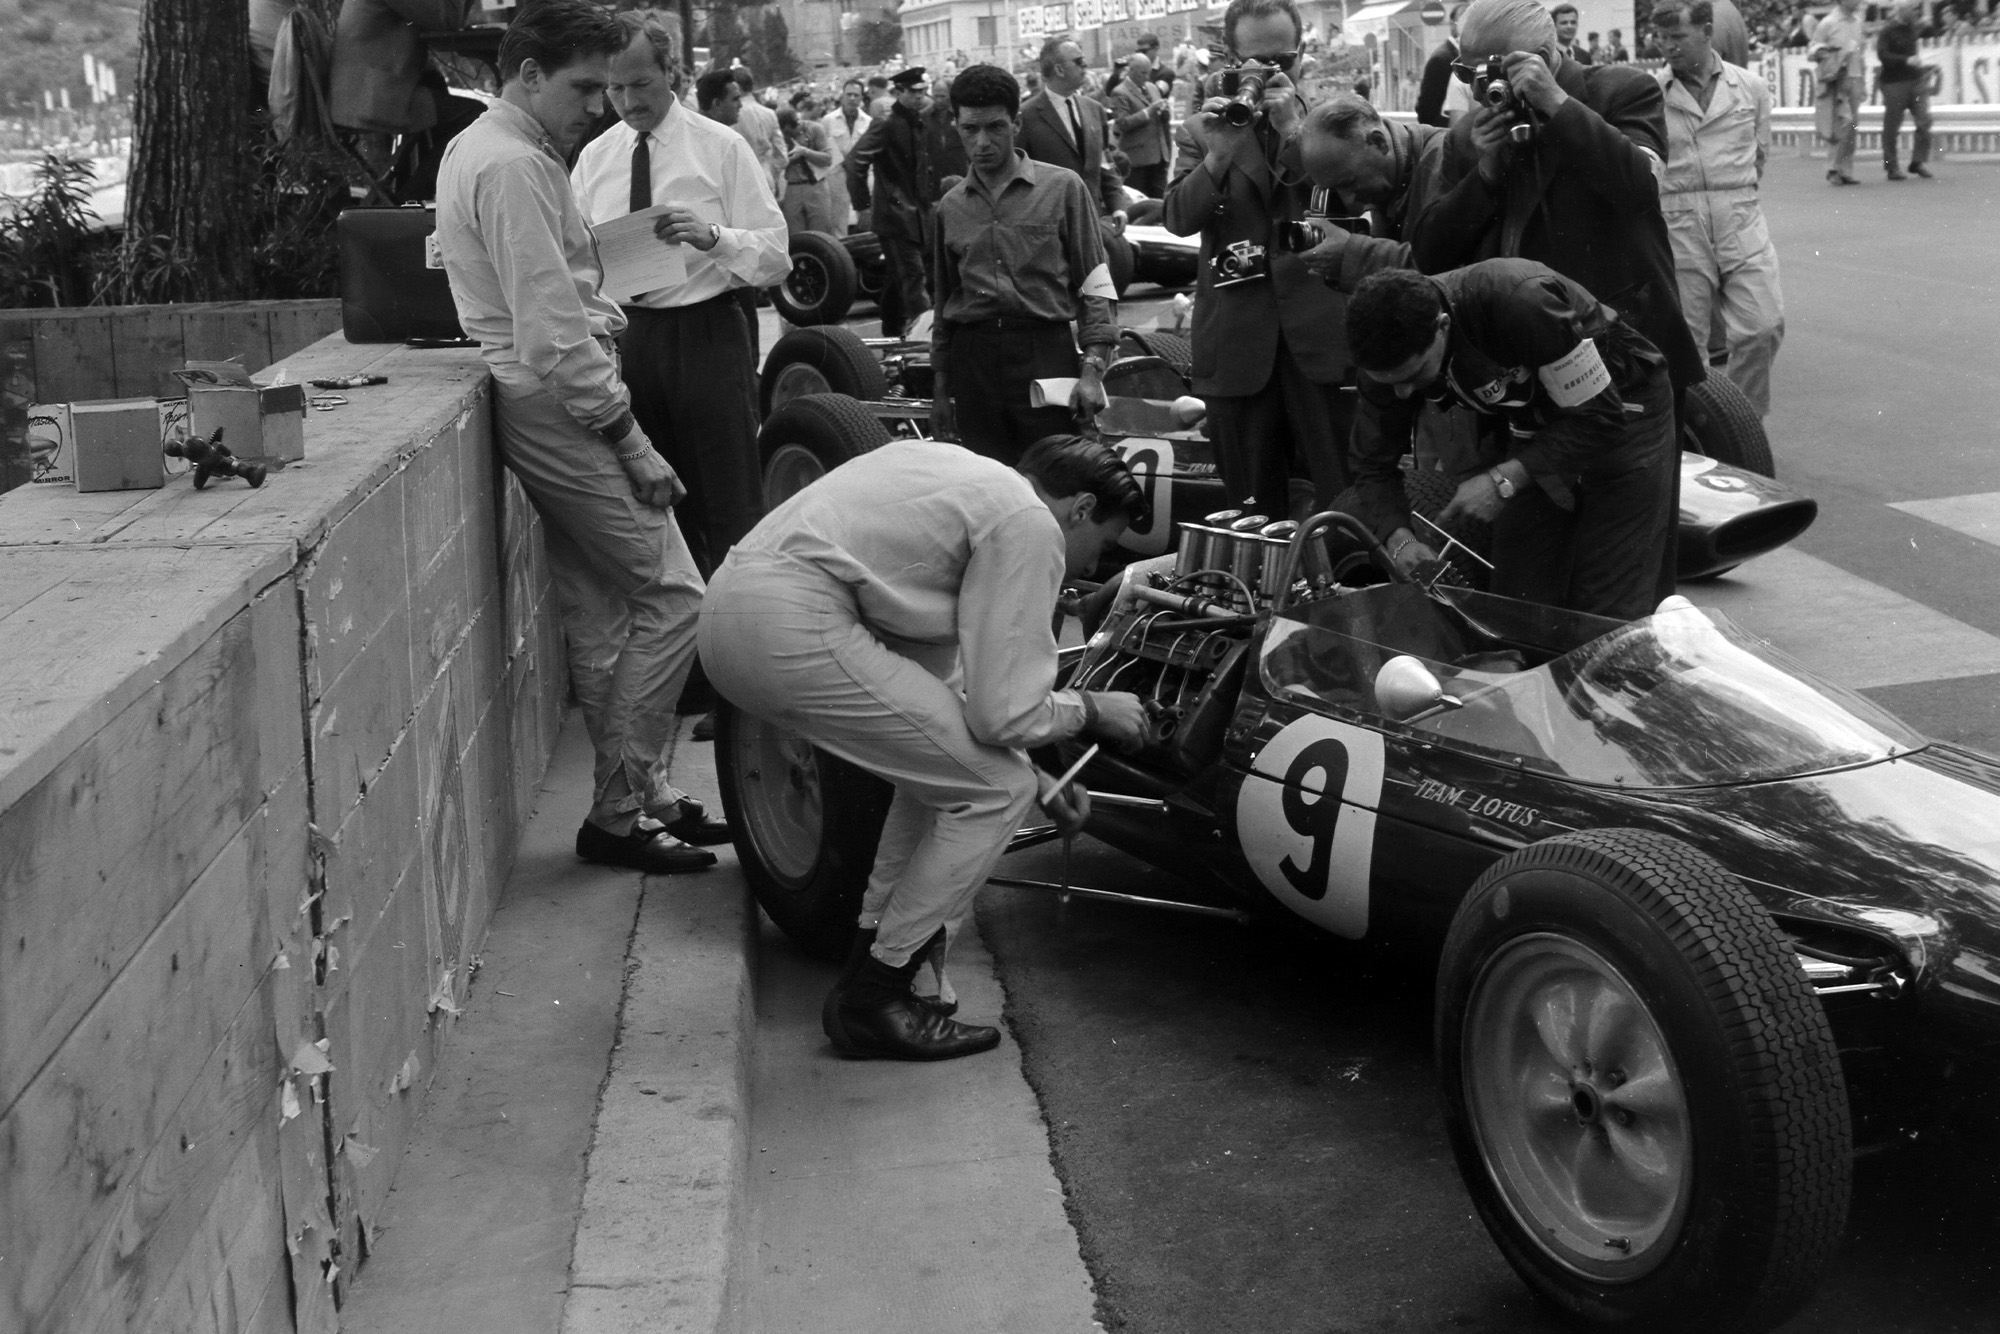 Jim Clark works on his Lotus 25 Climax in the pits